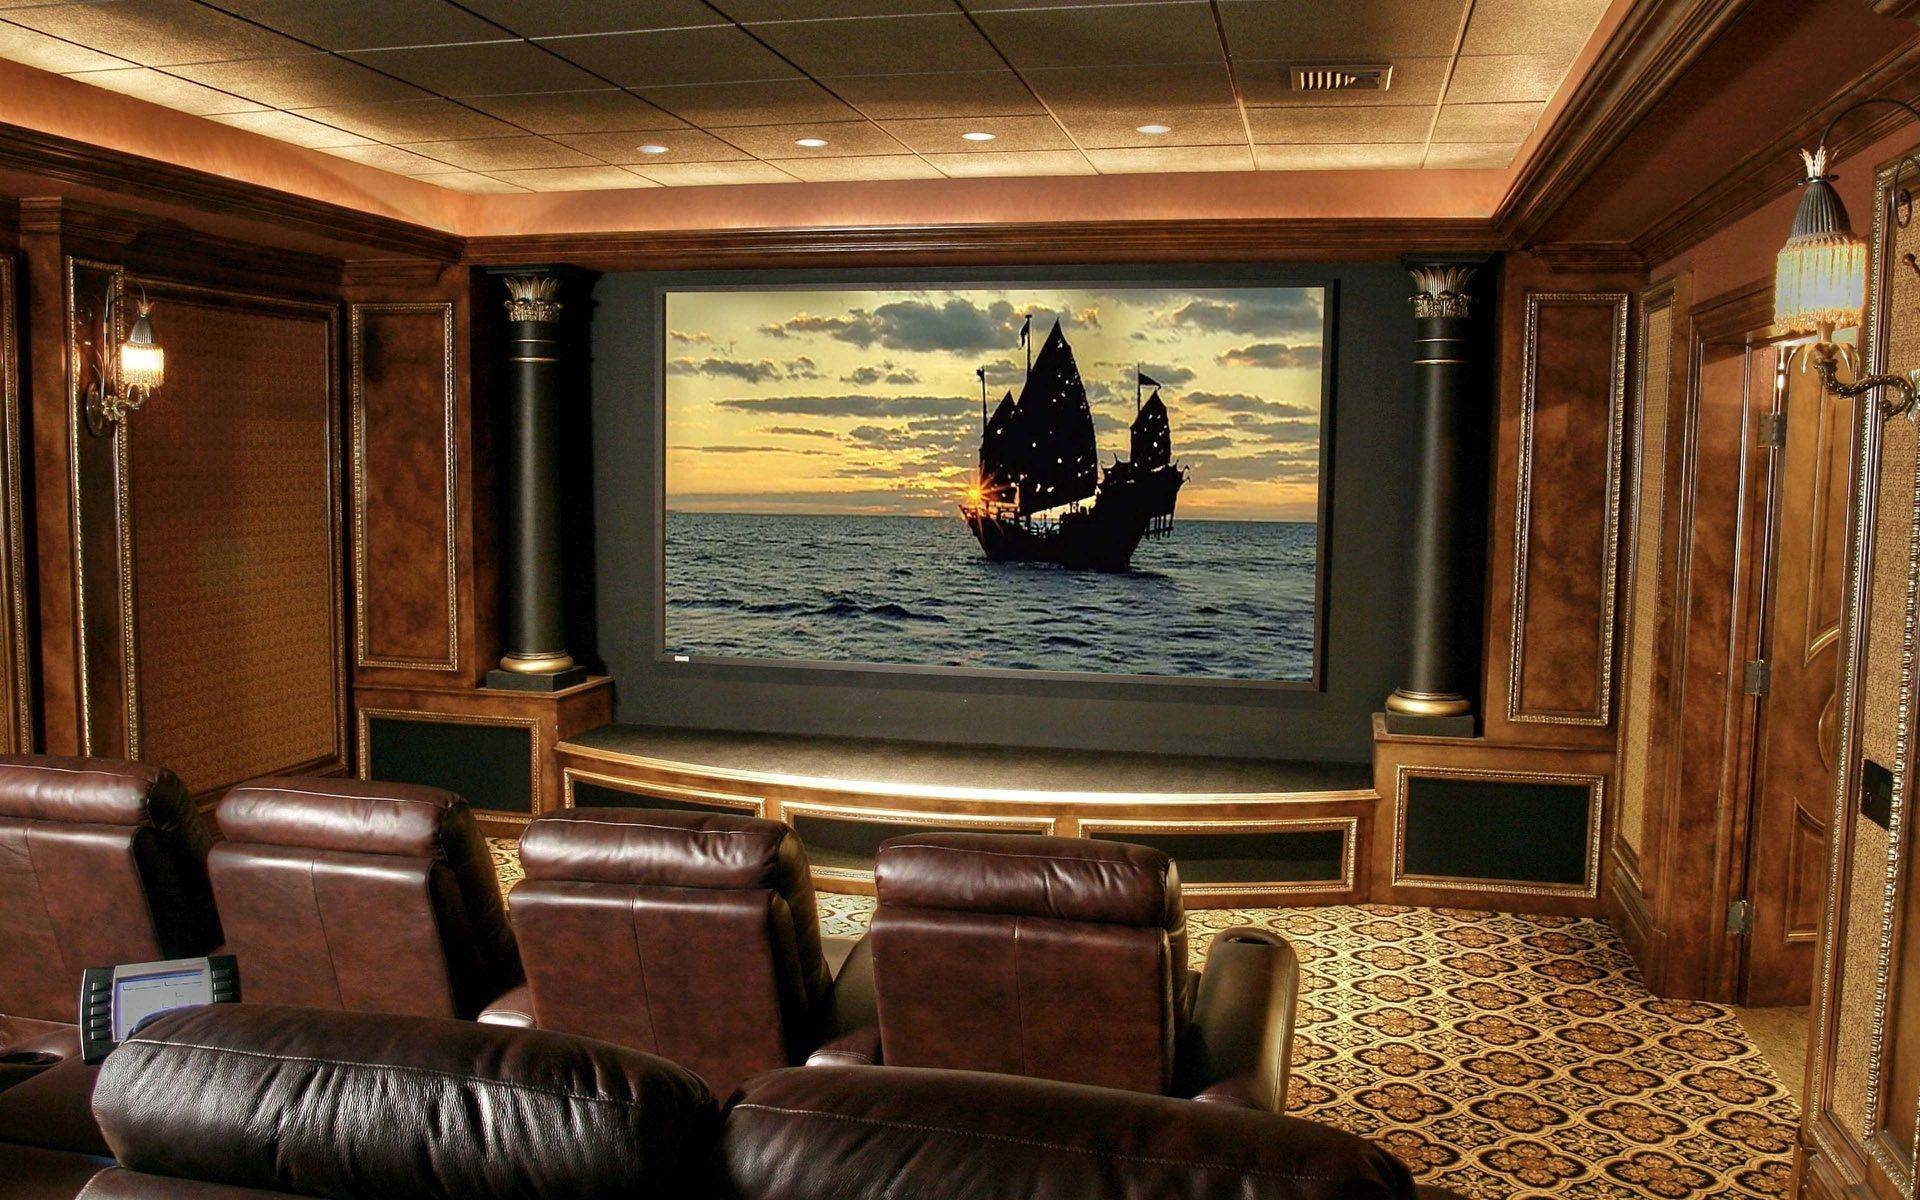 Basement Home Theater Plans Built In Wooden Shelves Movie Poster Intended For 2017 Home Theater Wall Art (View 2 of 30)